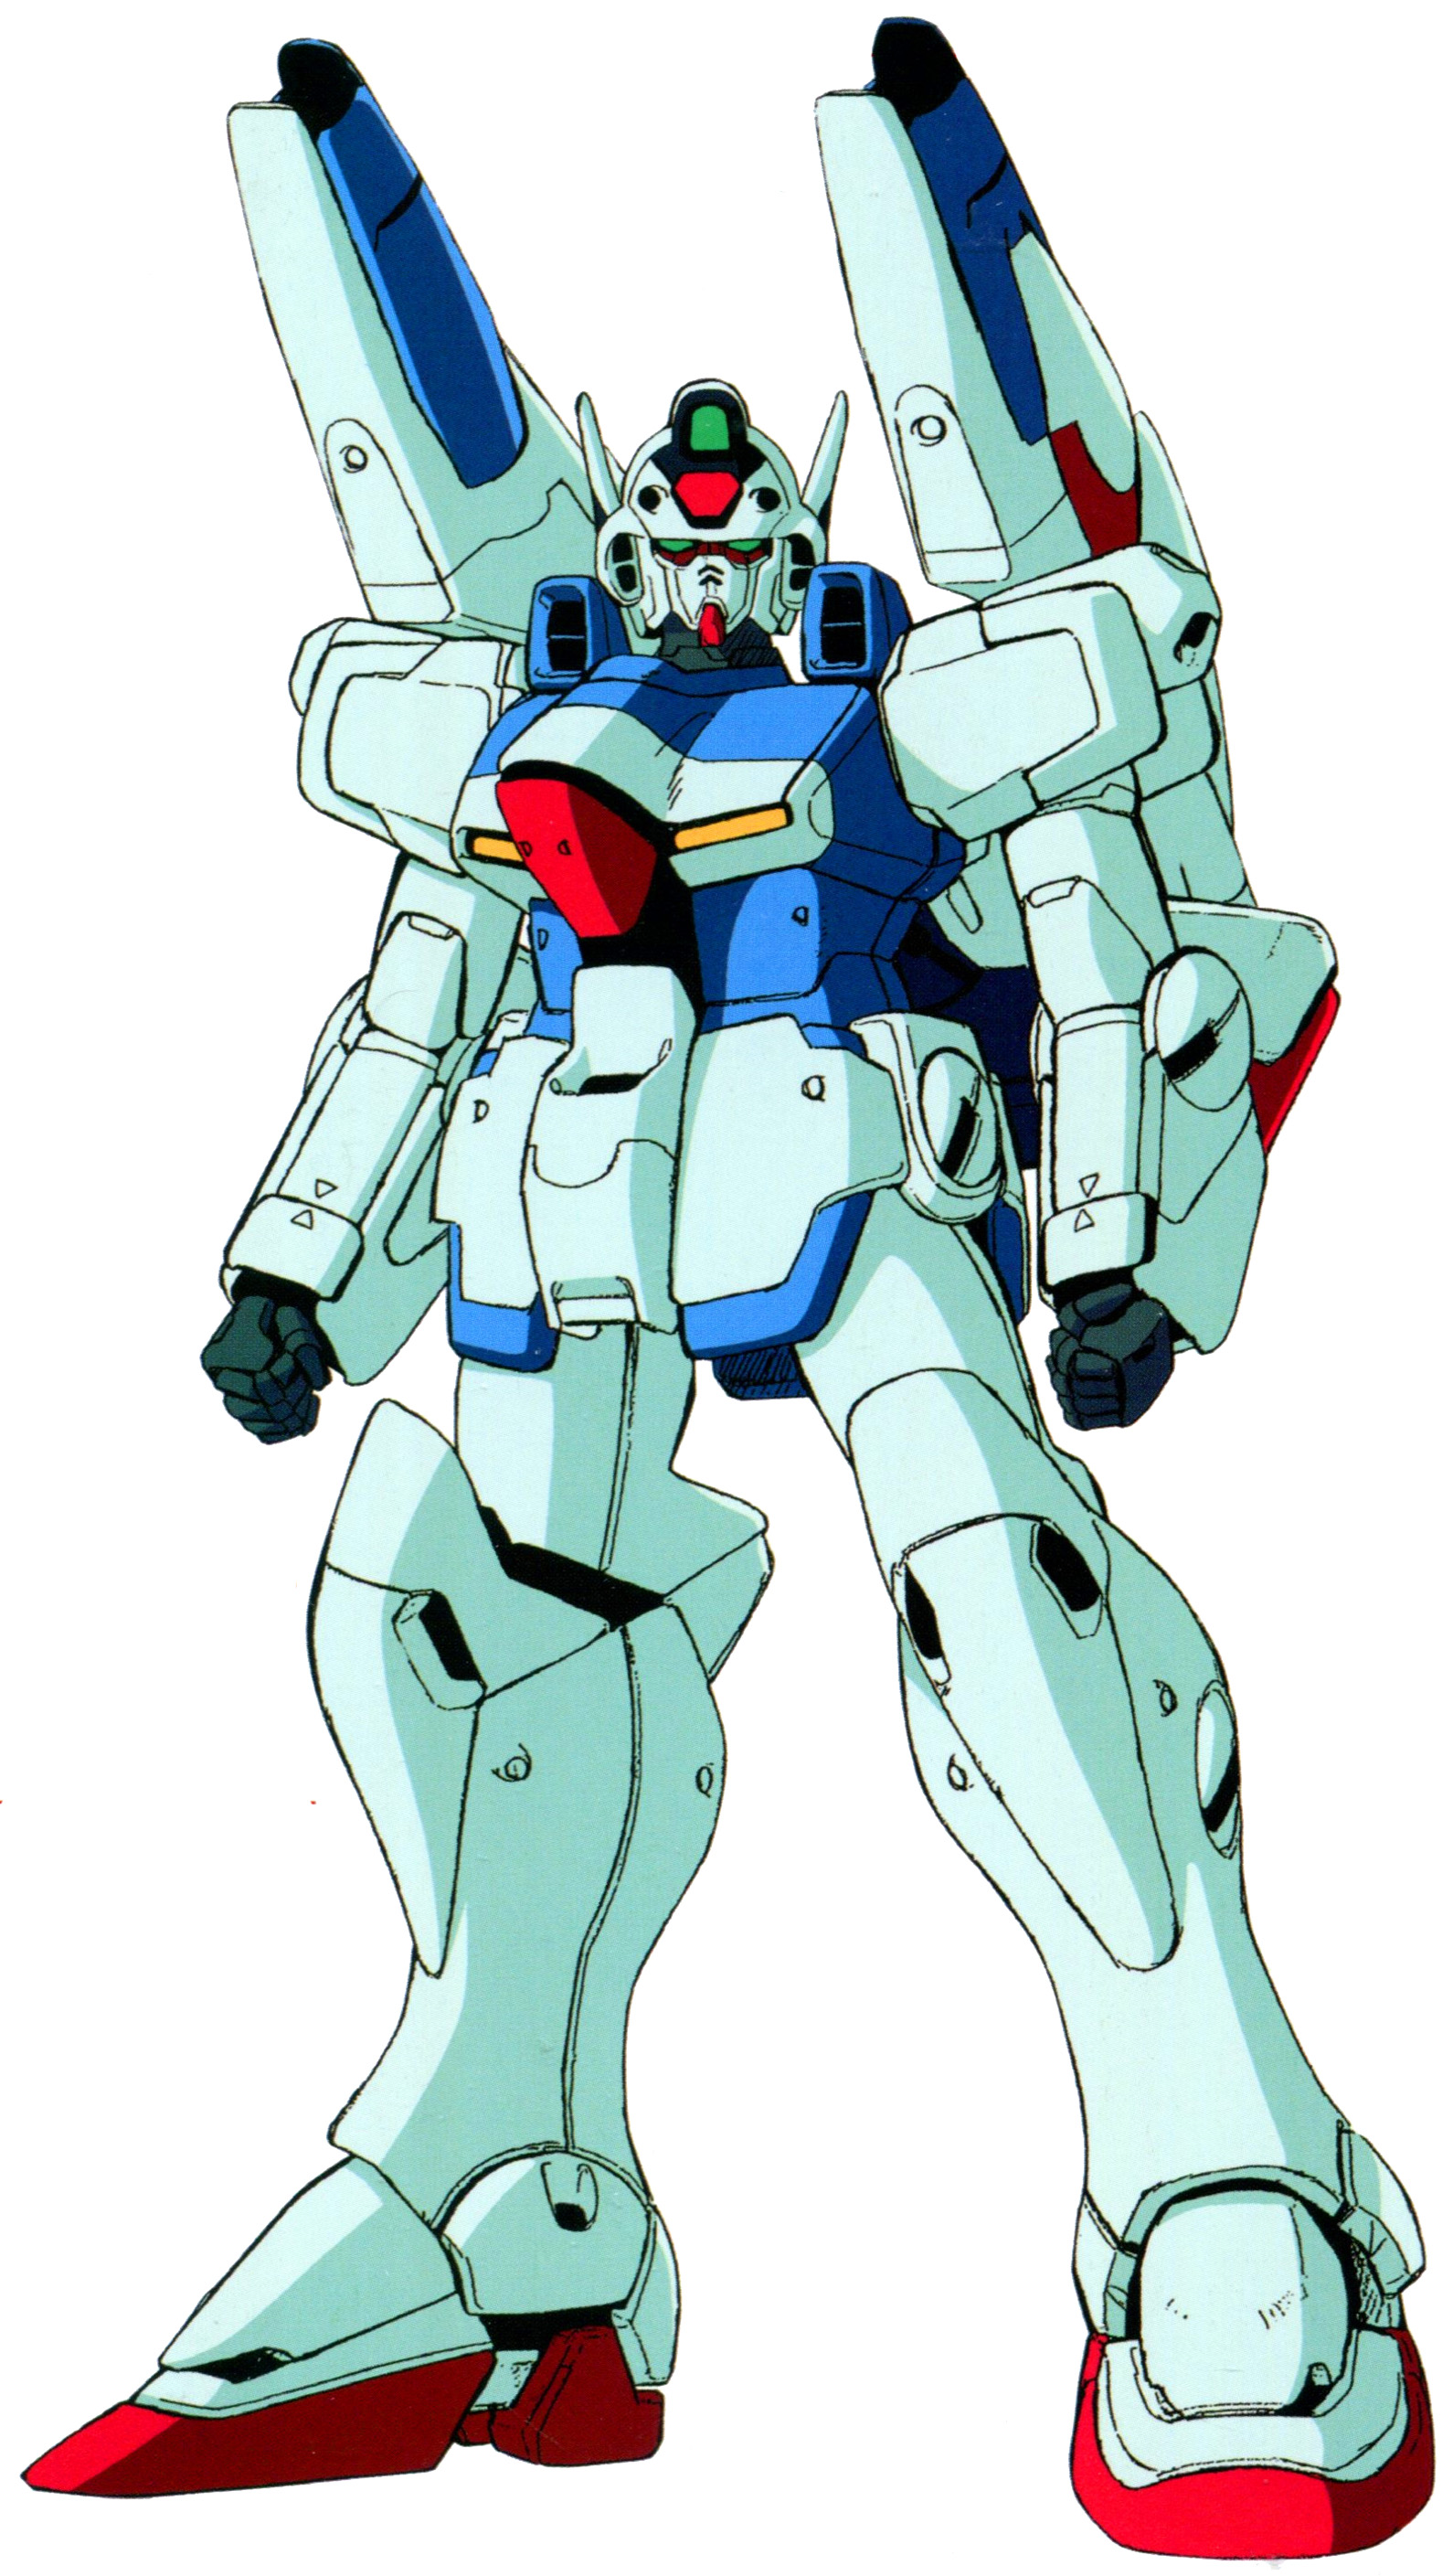 LM312V06 SD-VB03A V-Dash Gundam Hexa